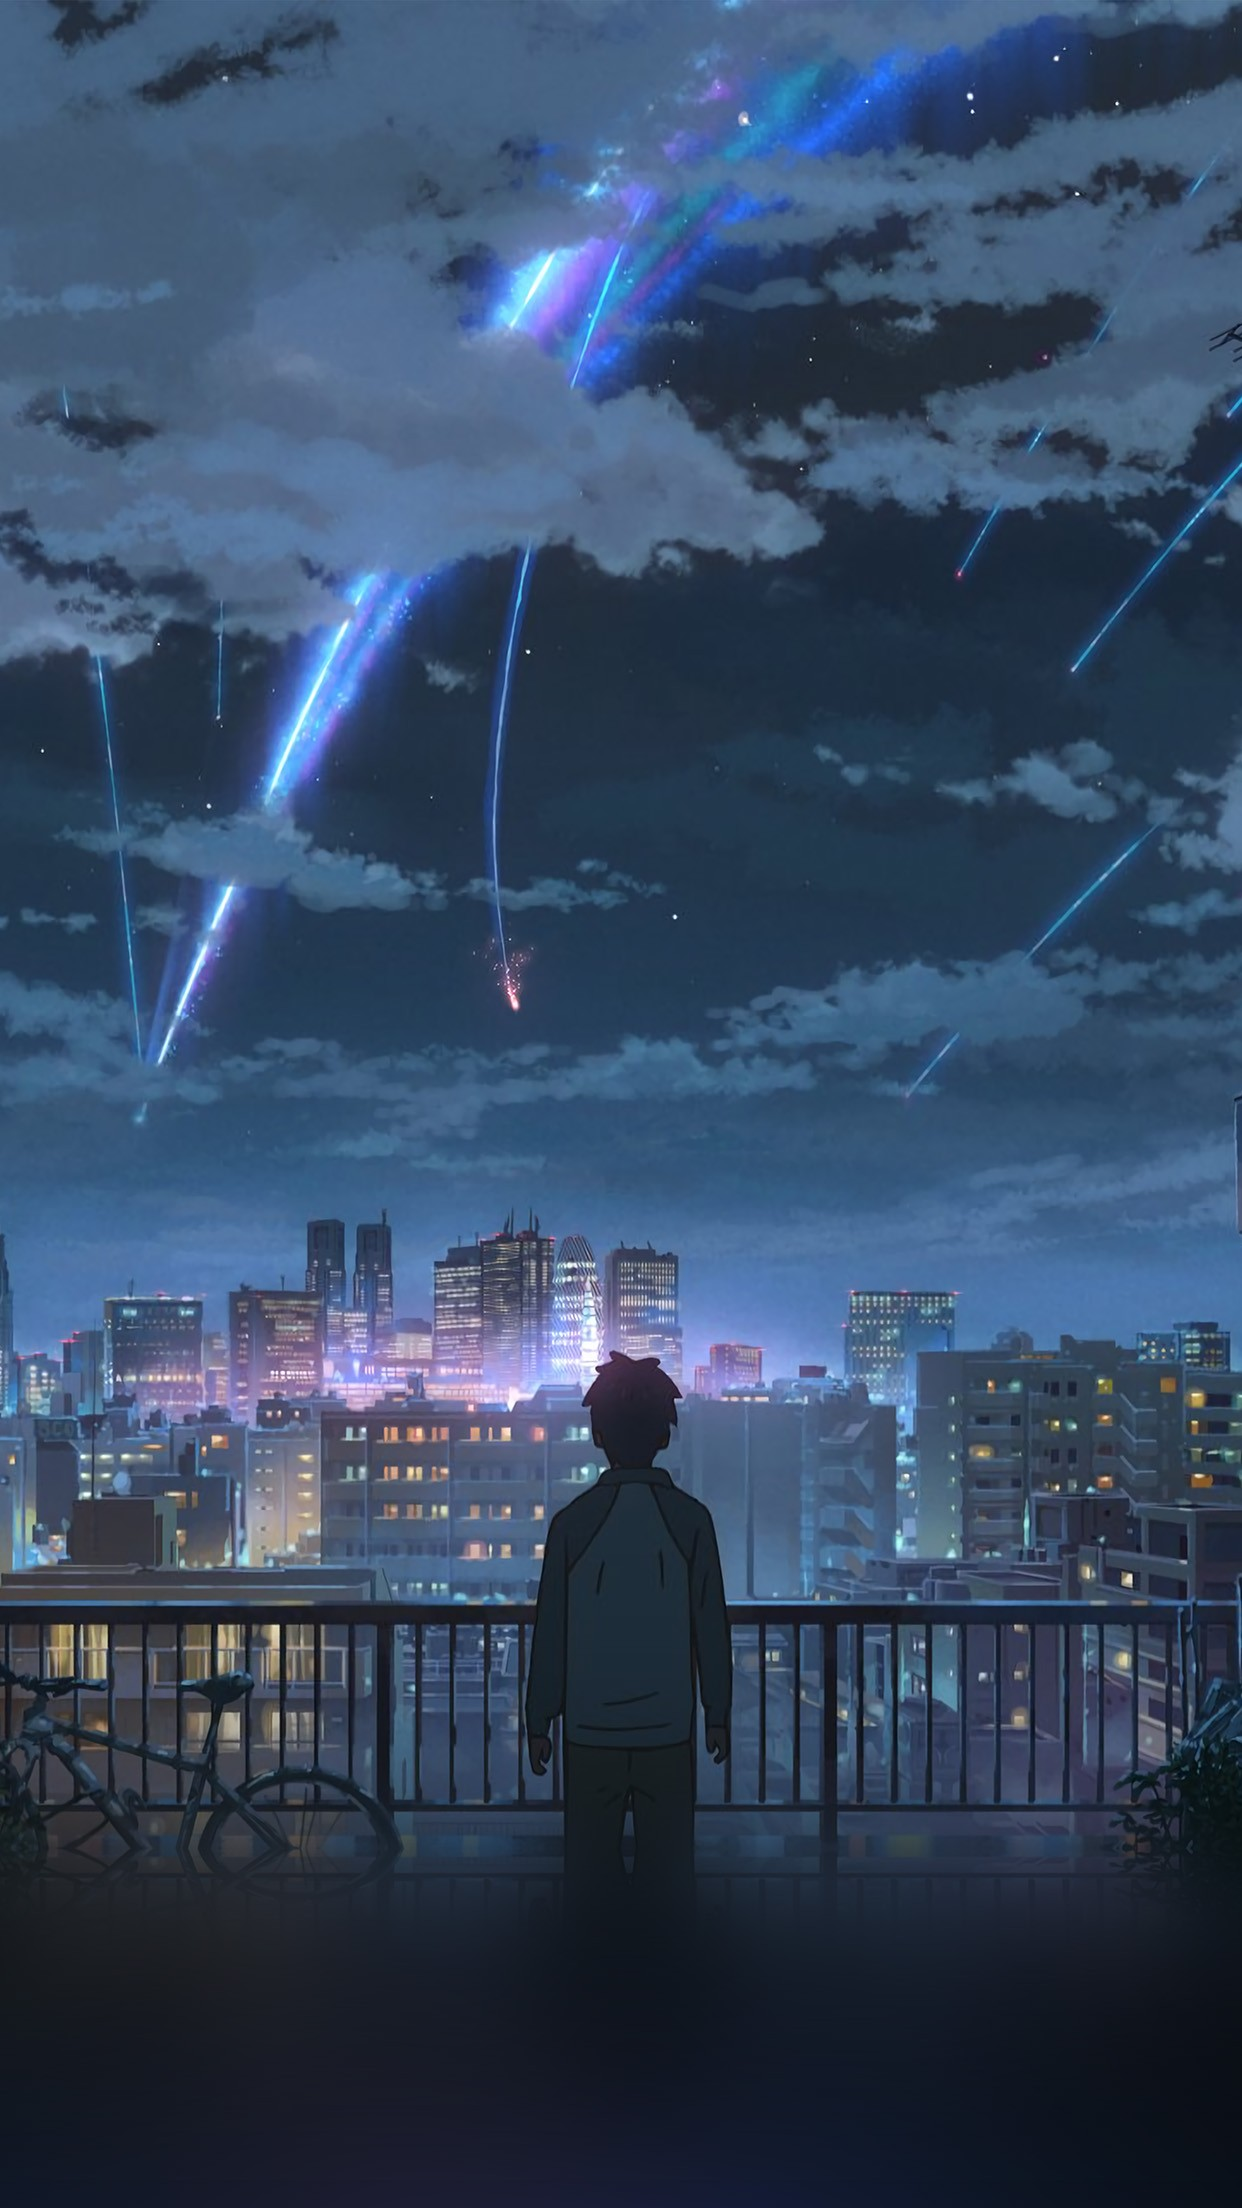 Wallpaper Android Hd Yourname Night Anime Sky Illustration - Anime Wallpaper Iphone X , HD Wallpaper & Backgrounds